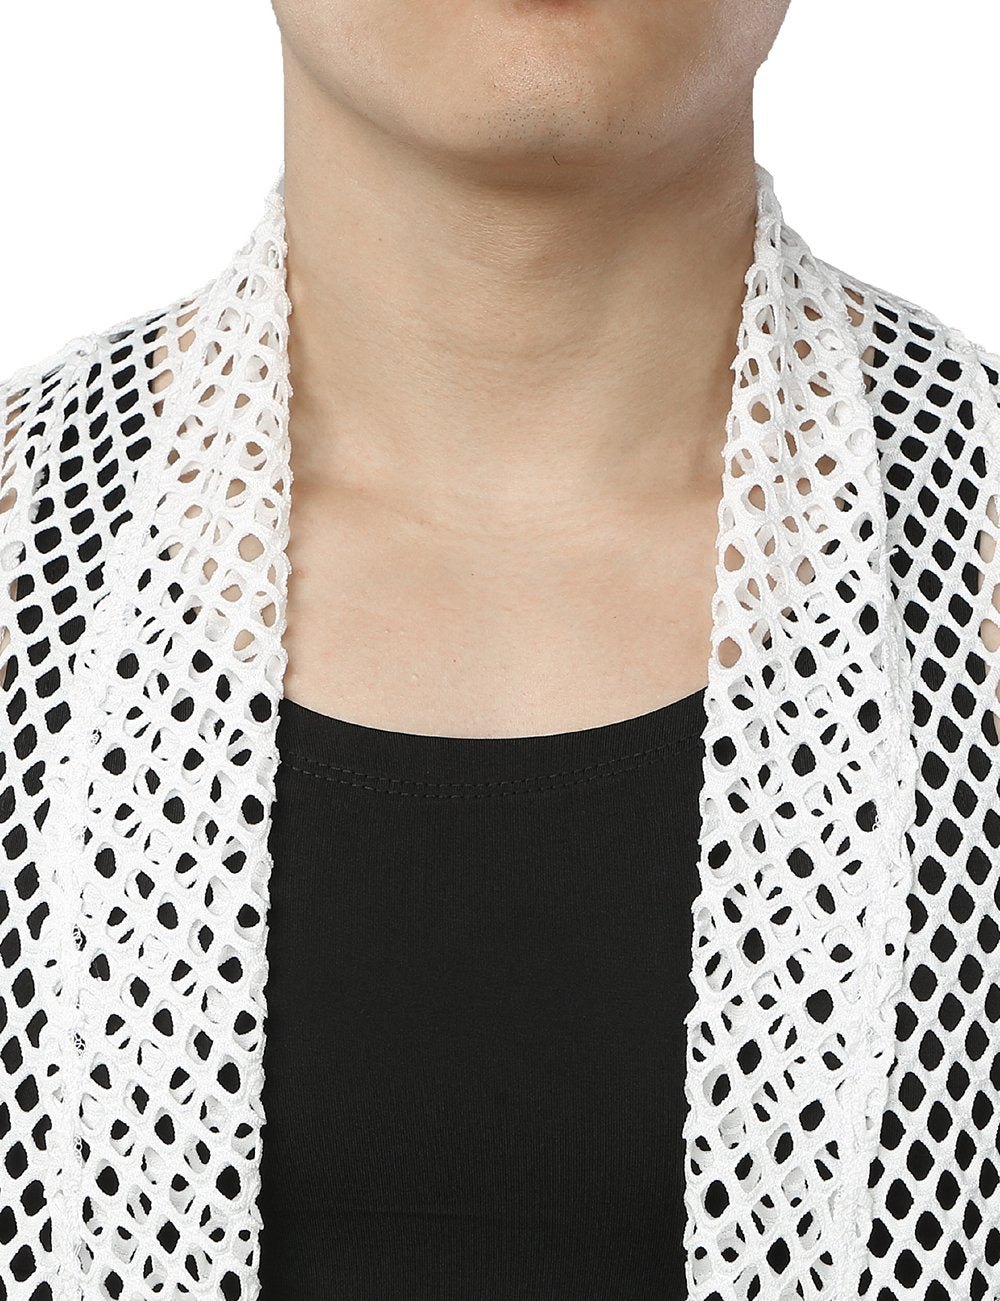 Men's Mesh Fishnet Fitted Muscle Cardigan